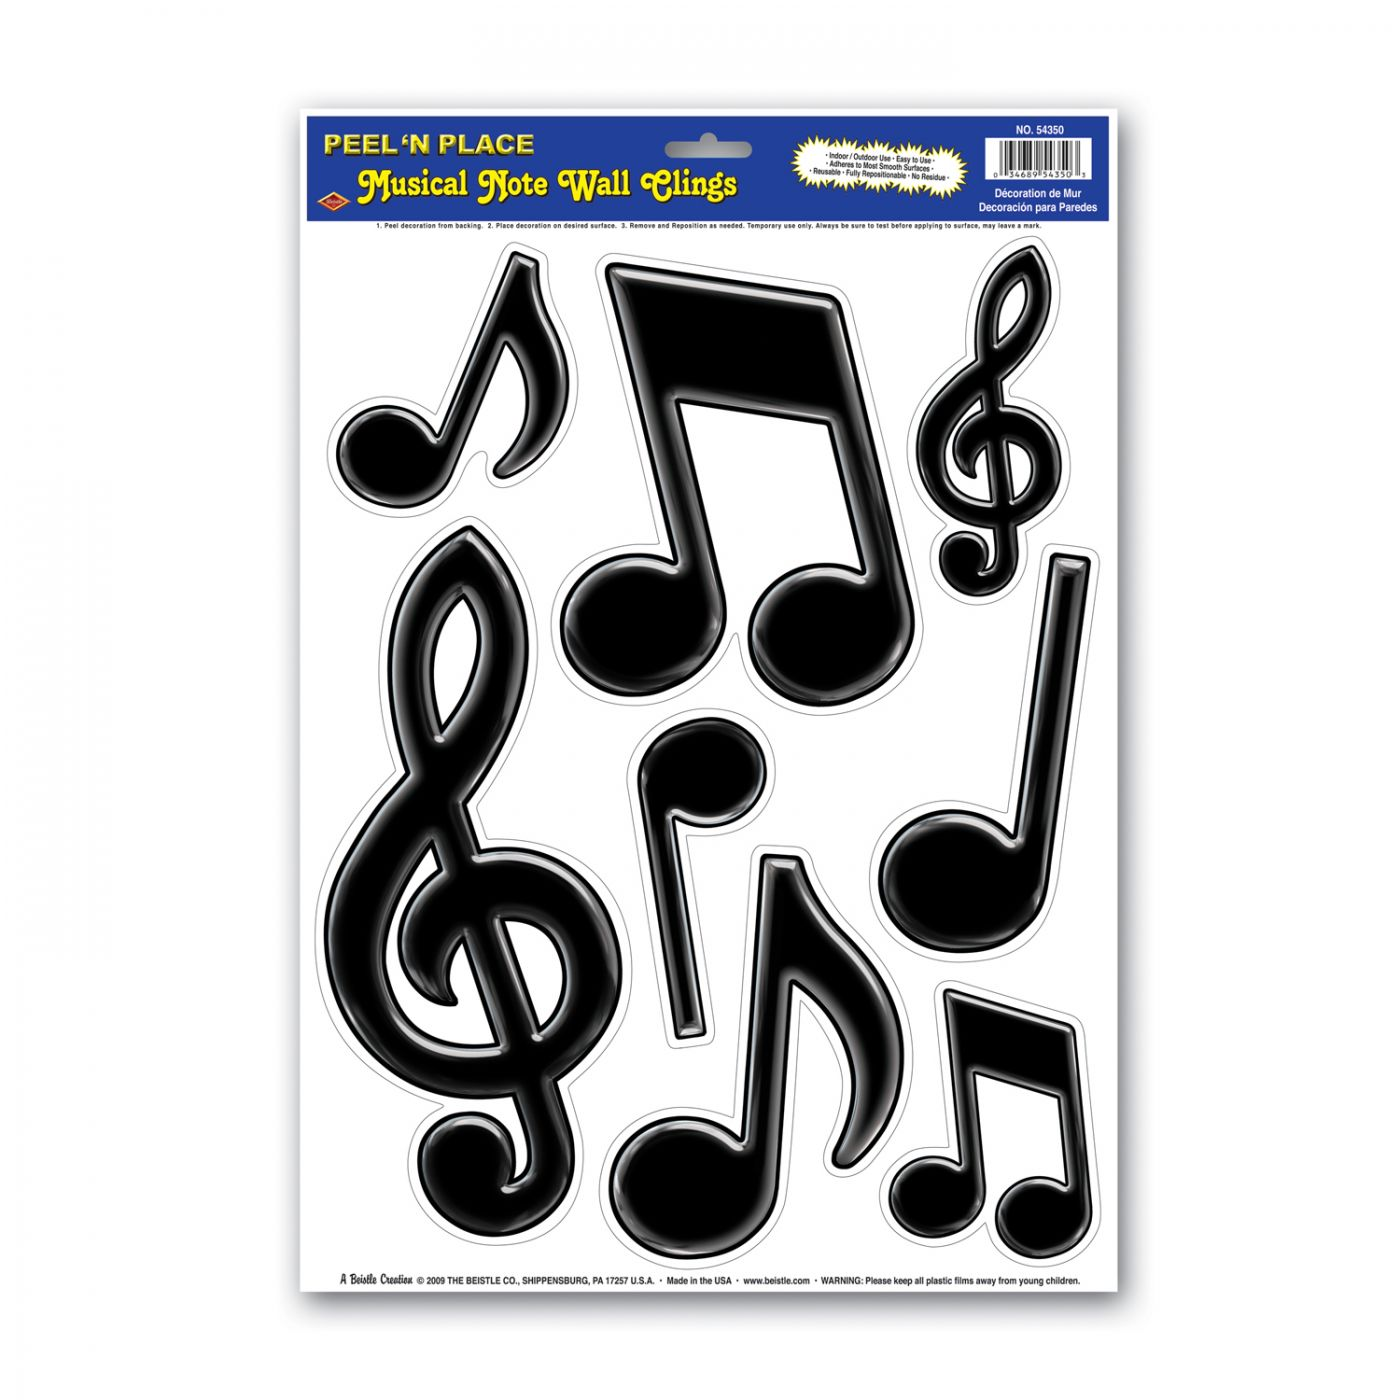 Musical Notes Peel 'N Place image